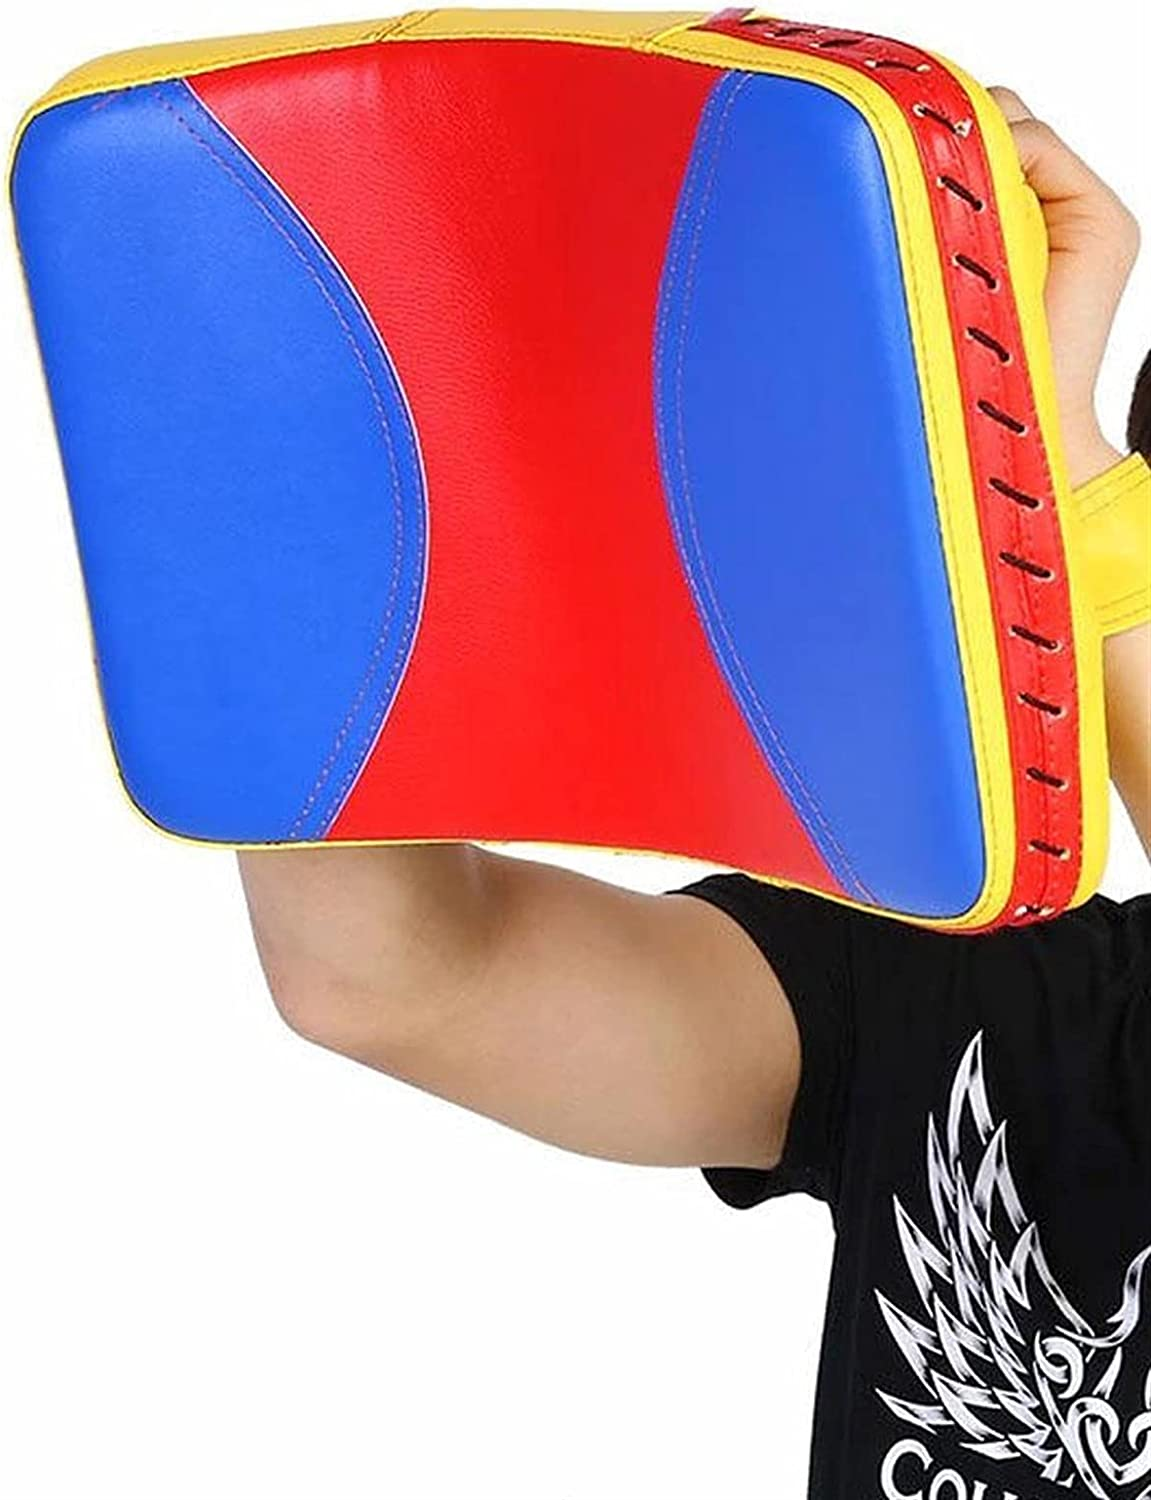 FFOO Boxing Bag Daily bargain sale Punching Bags F Sand Complete Free Shipping Pad